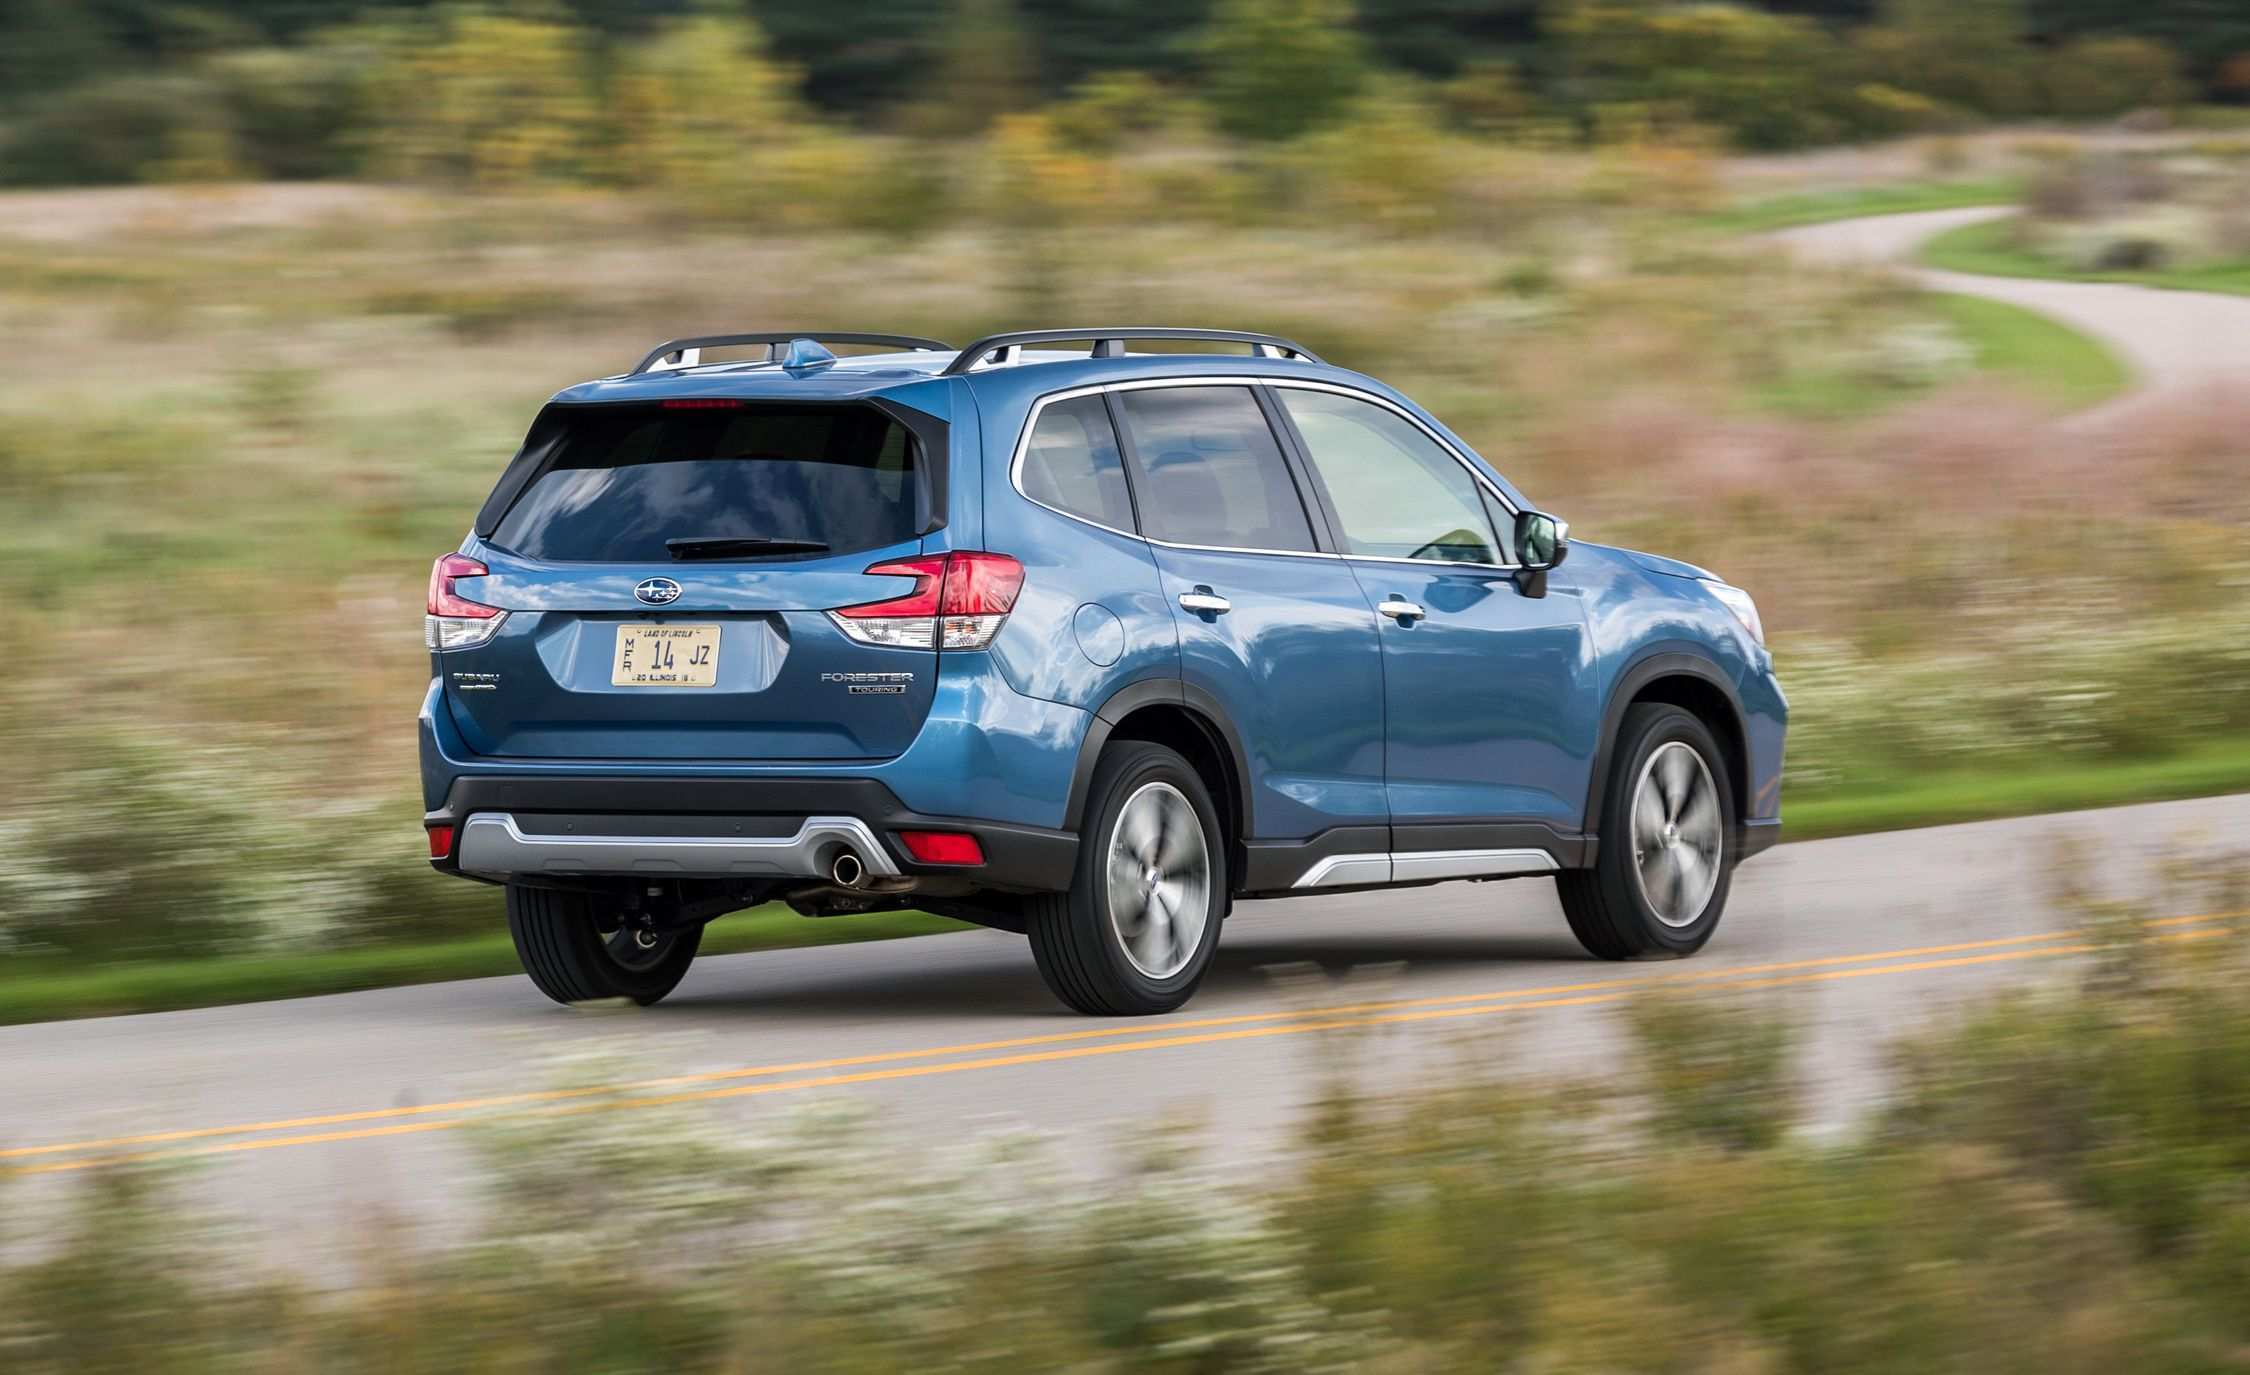 94 New The 2019 Subaru Forester Interior for The 2019 Subaru Forester